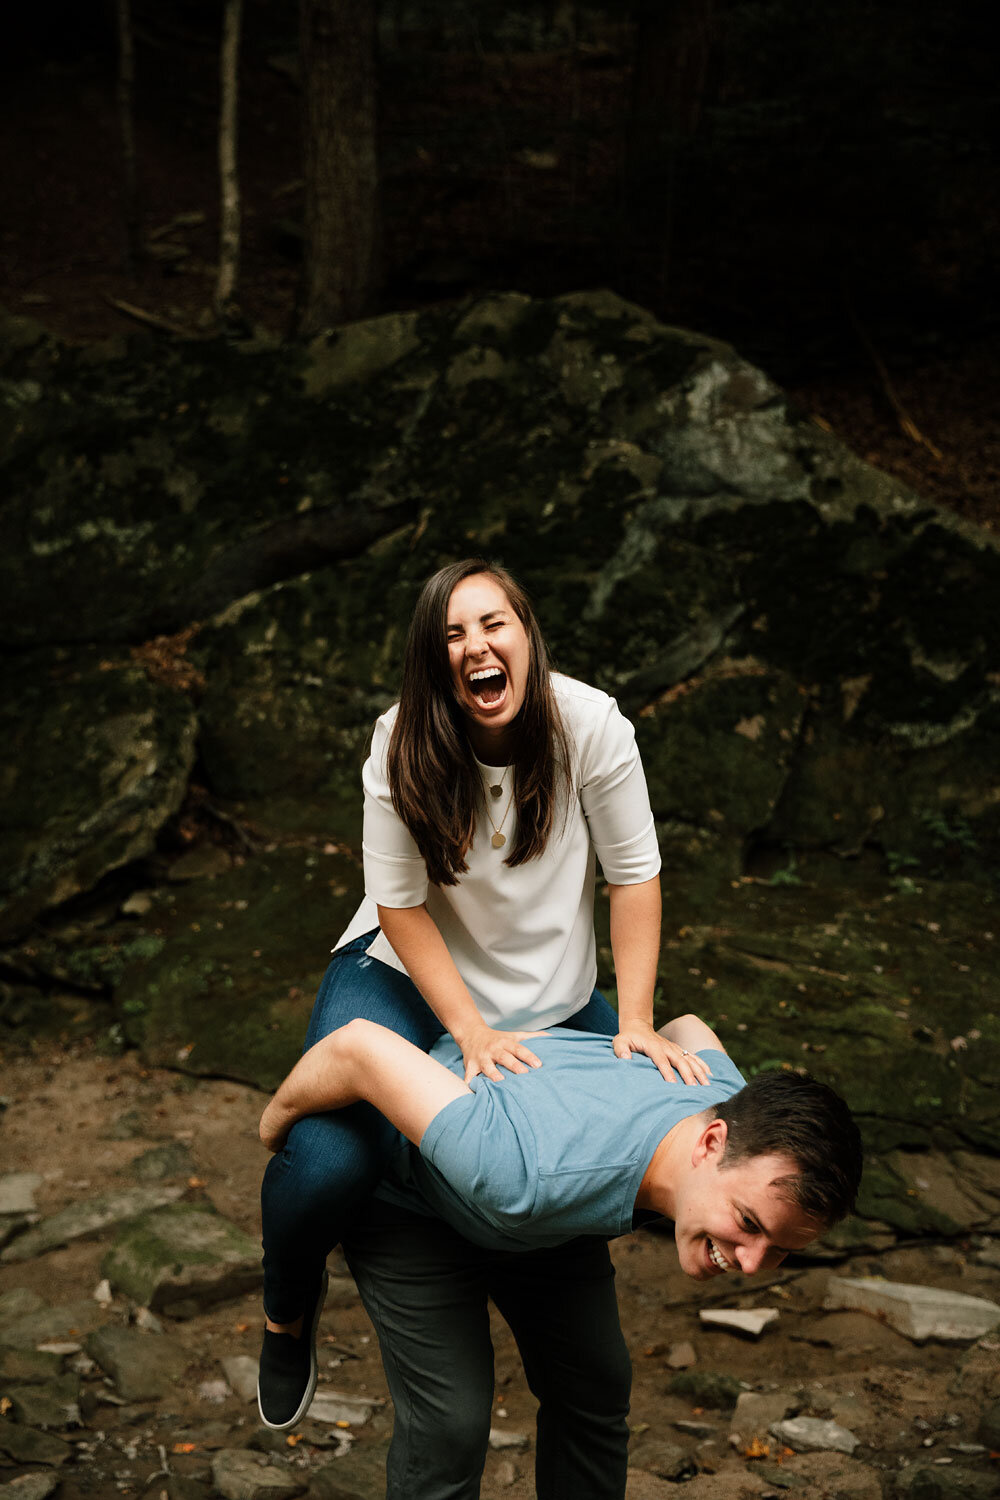 south-chagrin-reservation-engagement-portraits-wedding-photographers-in-cleveland-25.jpg